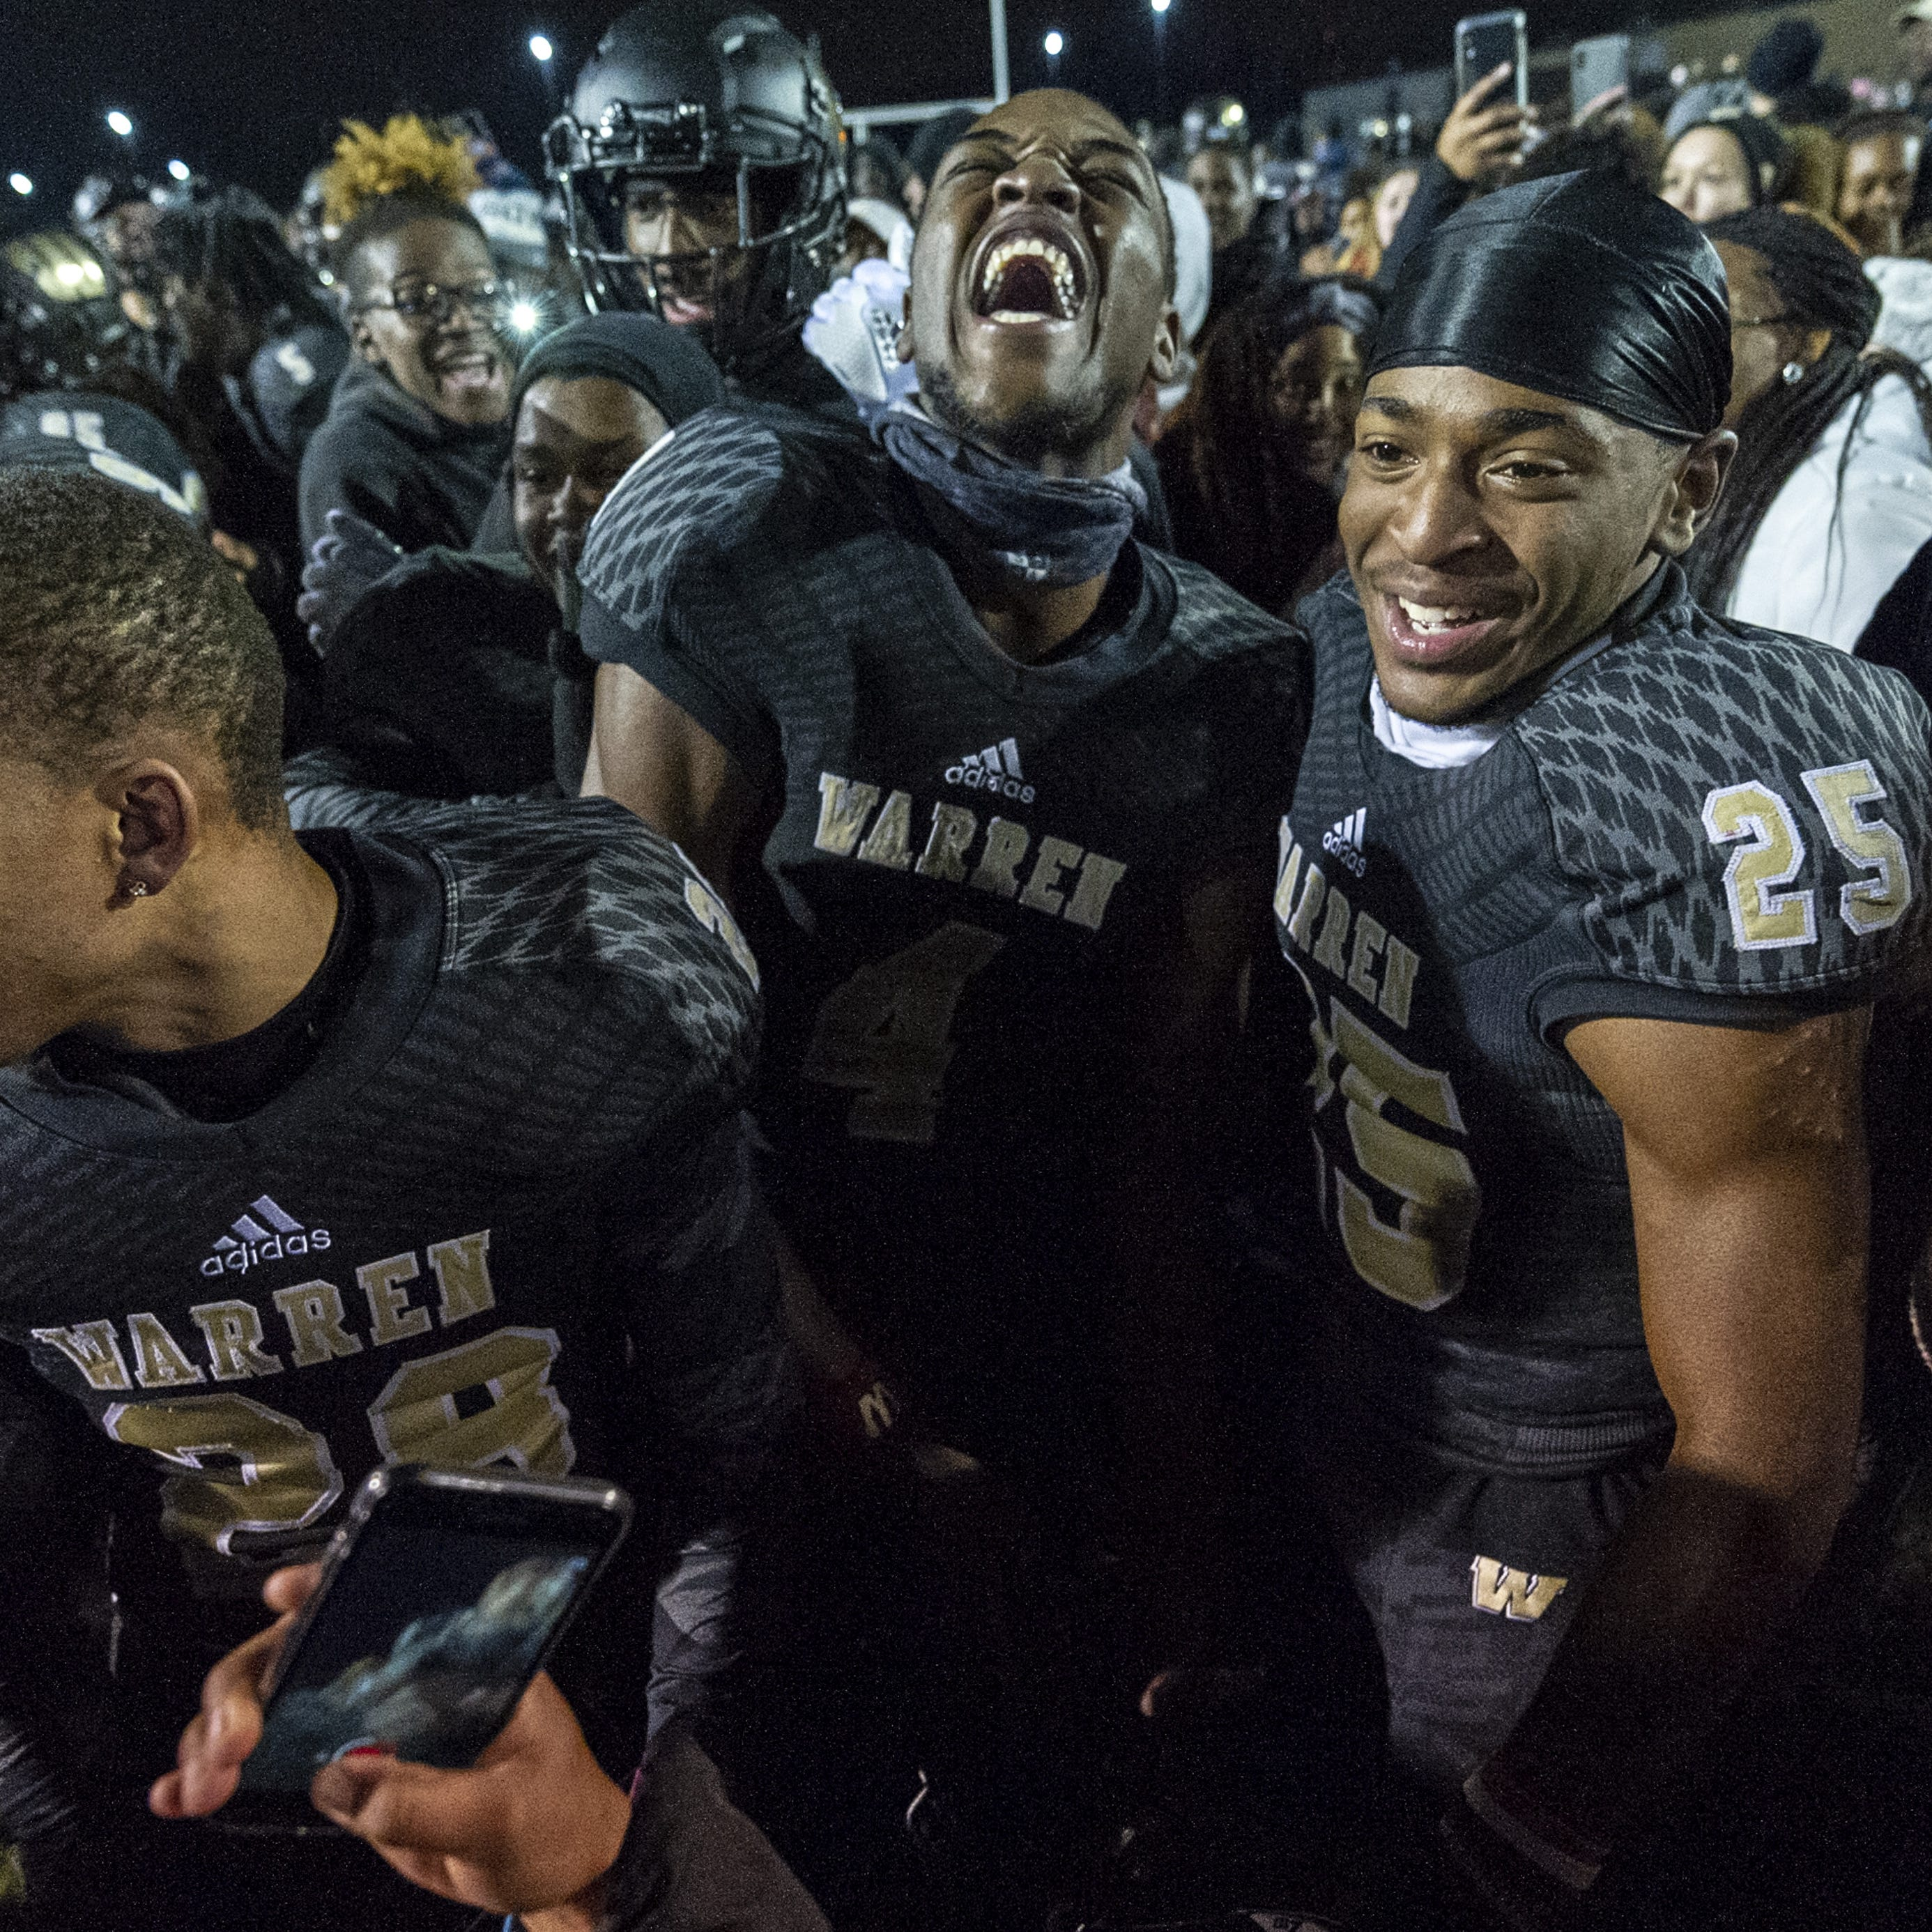 Warren Central High School junior Randy Wells Jr. (29), from left, senior David Bell (4) , and sophomore Damon Cassie (25) celebrate their win after the game. Warren Central High School hosted Center Grove High School in an IHSAA Class 6A Semi-State varsity football game, Friday, Nov. 16, 2018. Warren Central won 27-20.